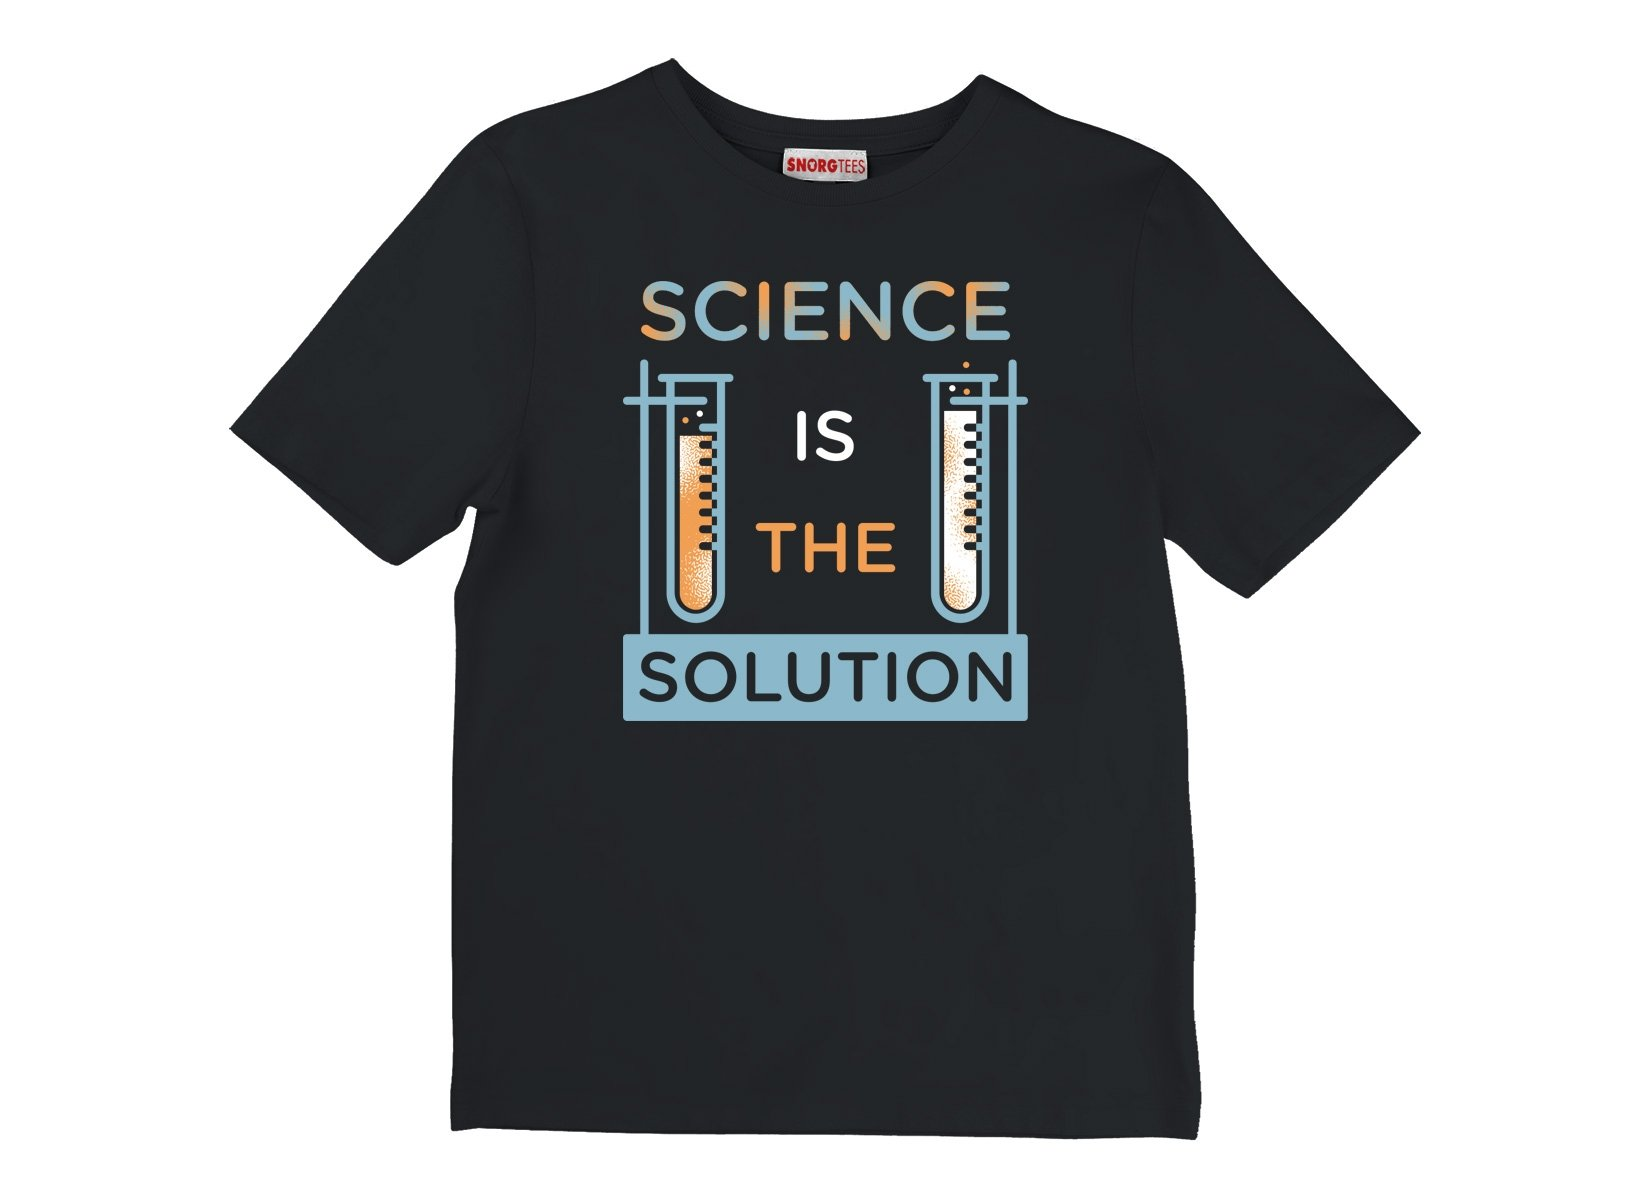 Science Is The Solution on Kids T-Shirt